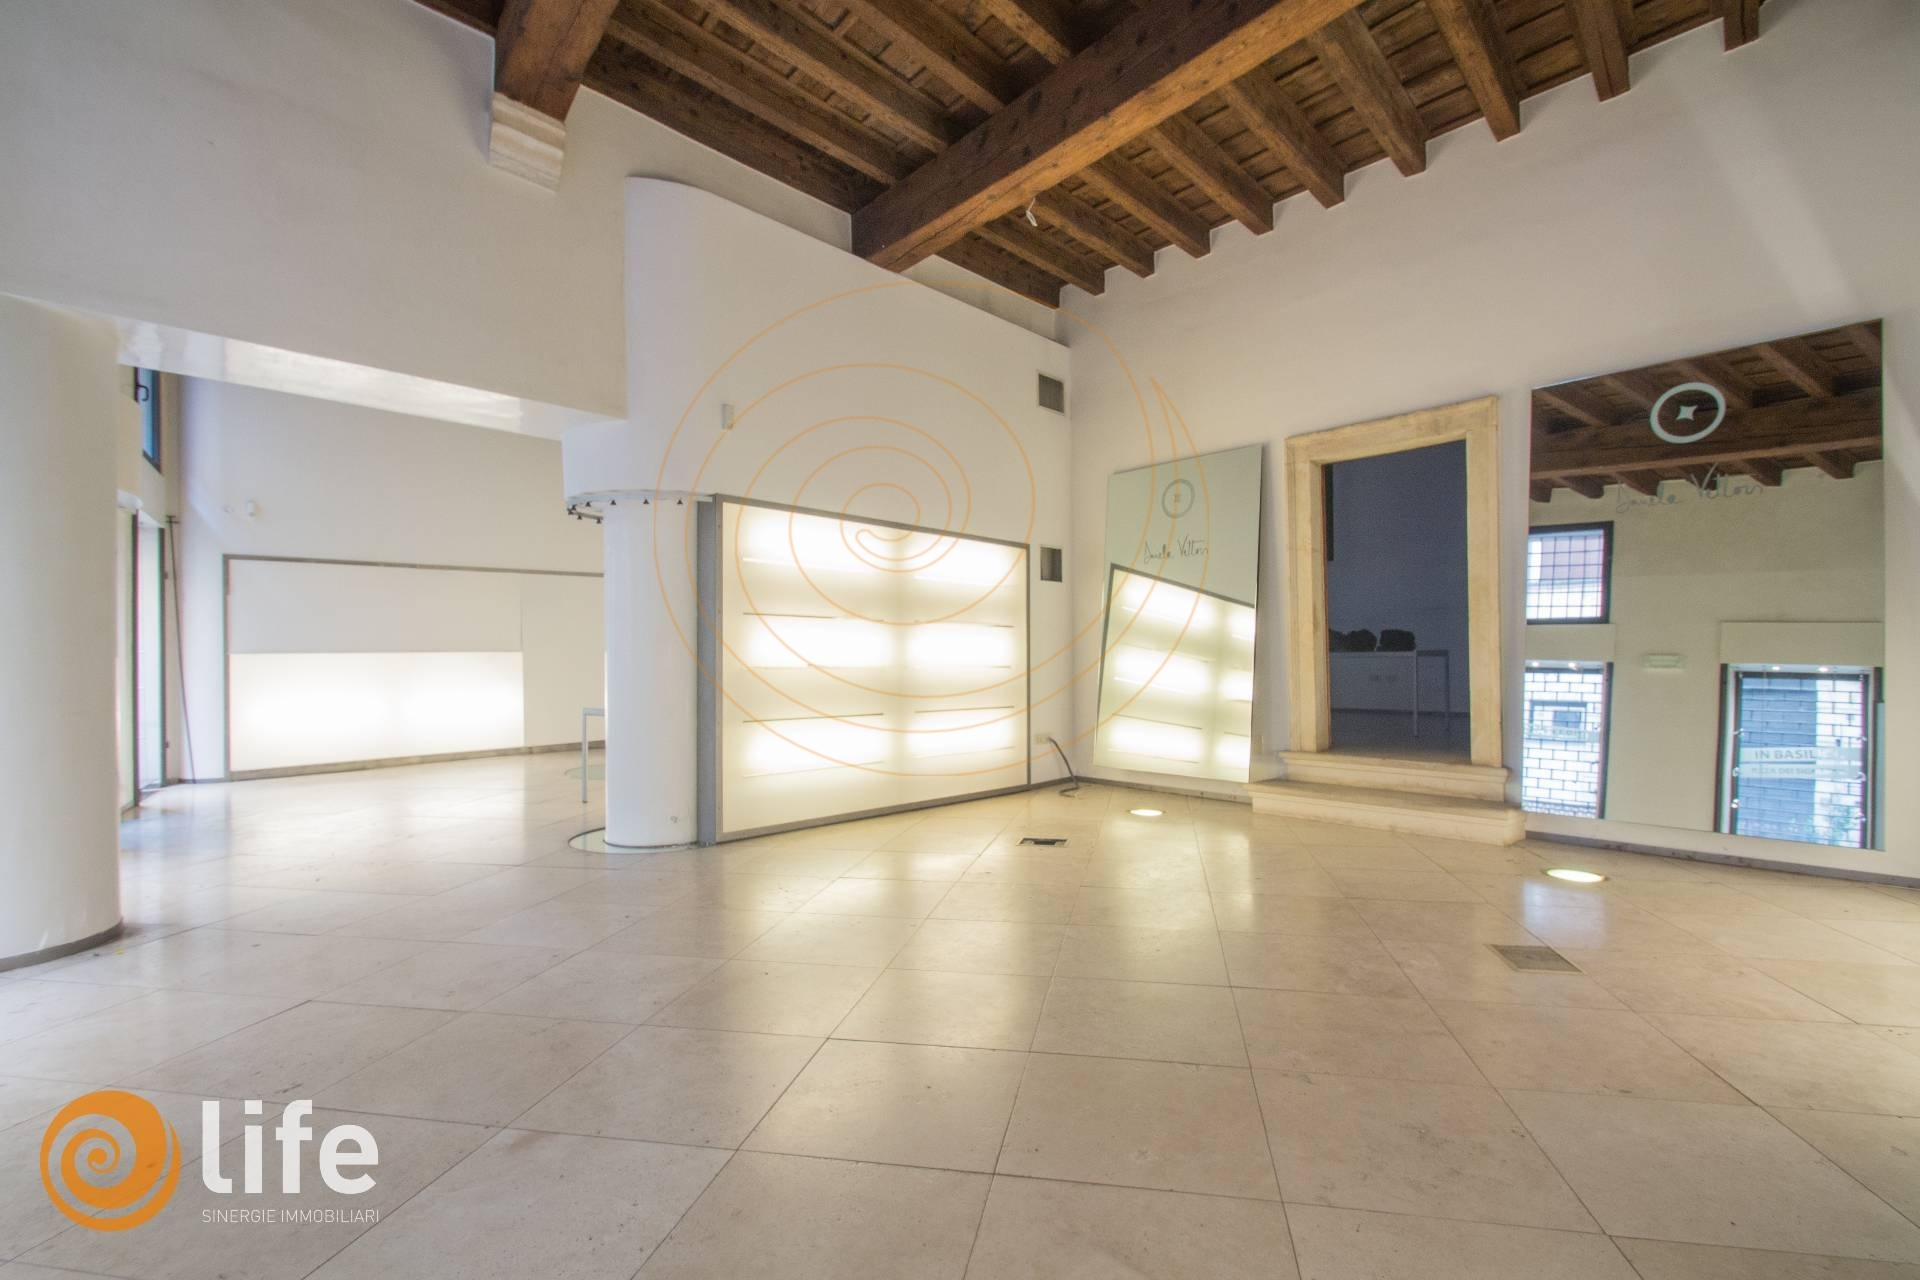 Locale commerciale in affitto a vicenza cod. fr014 loc